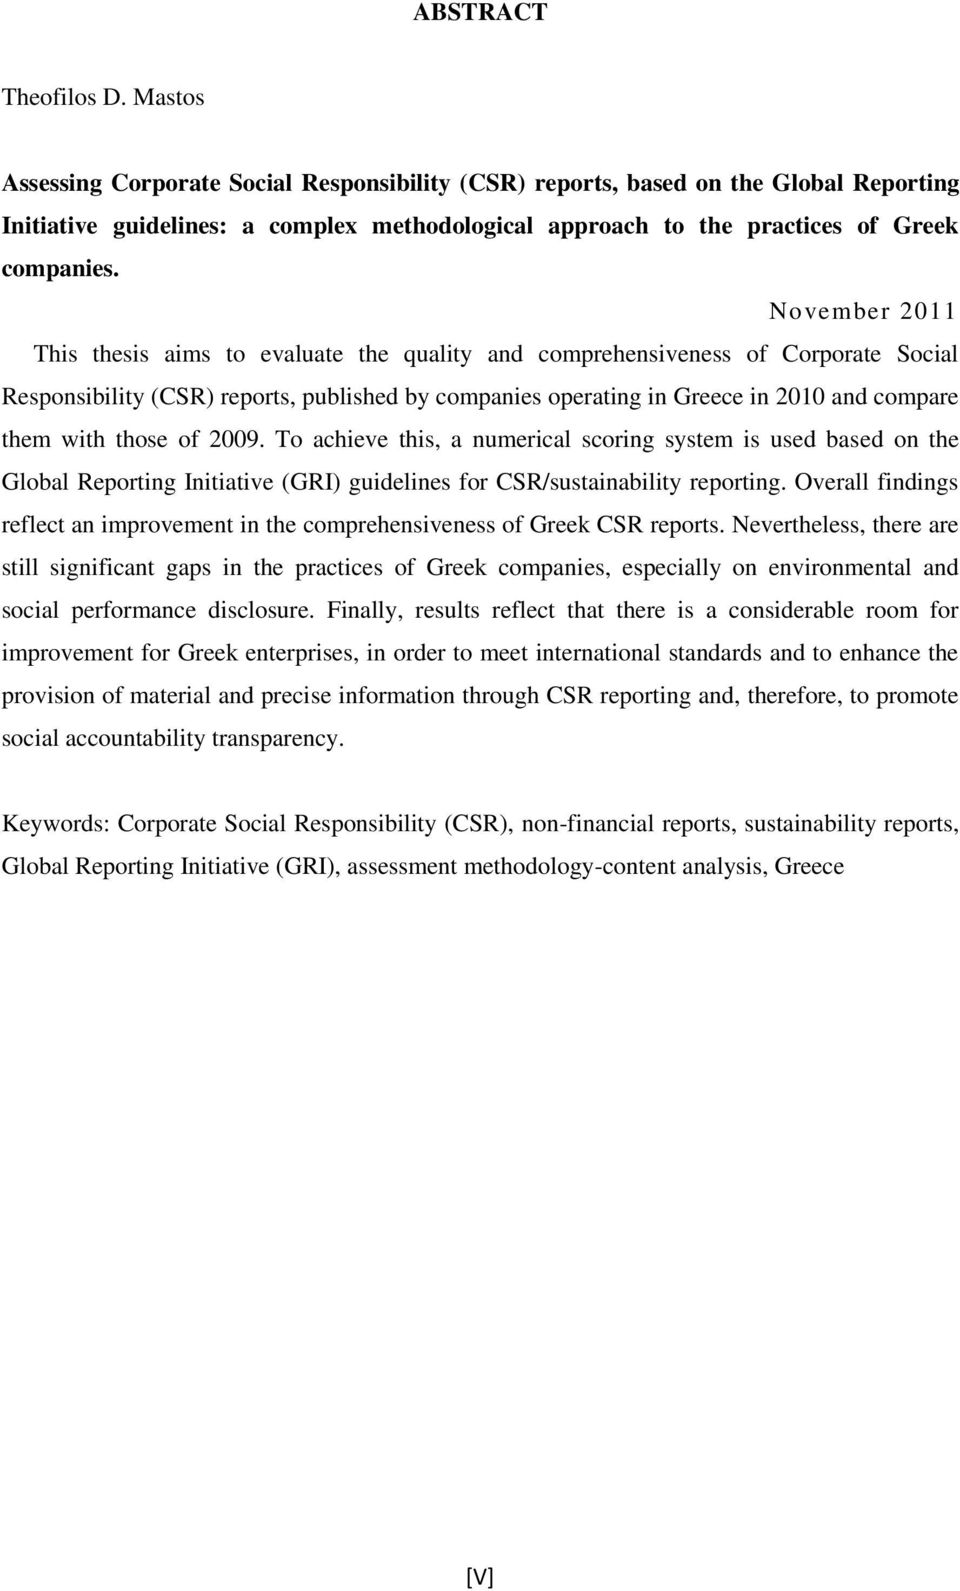 November 2011 This thesis aims to evaluate the quality and comprehensiveness of Corporate Social Responsibility (CSR) reports, published by companies operating in Greece in 2010 and compare them with